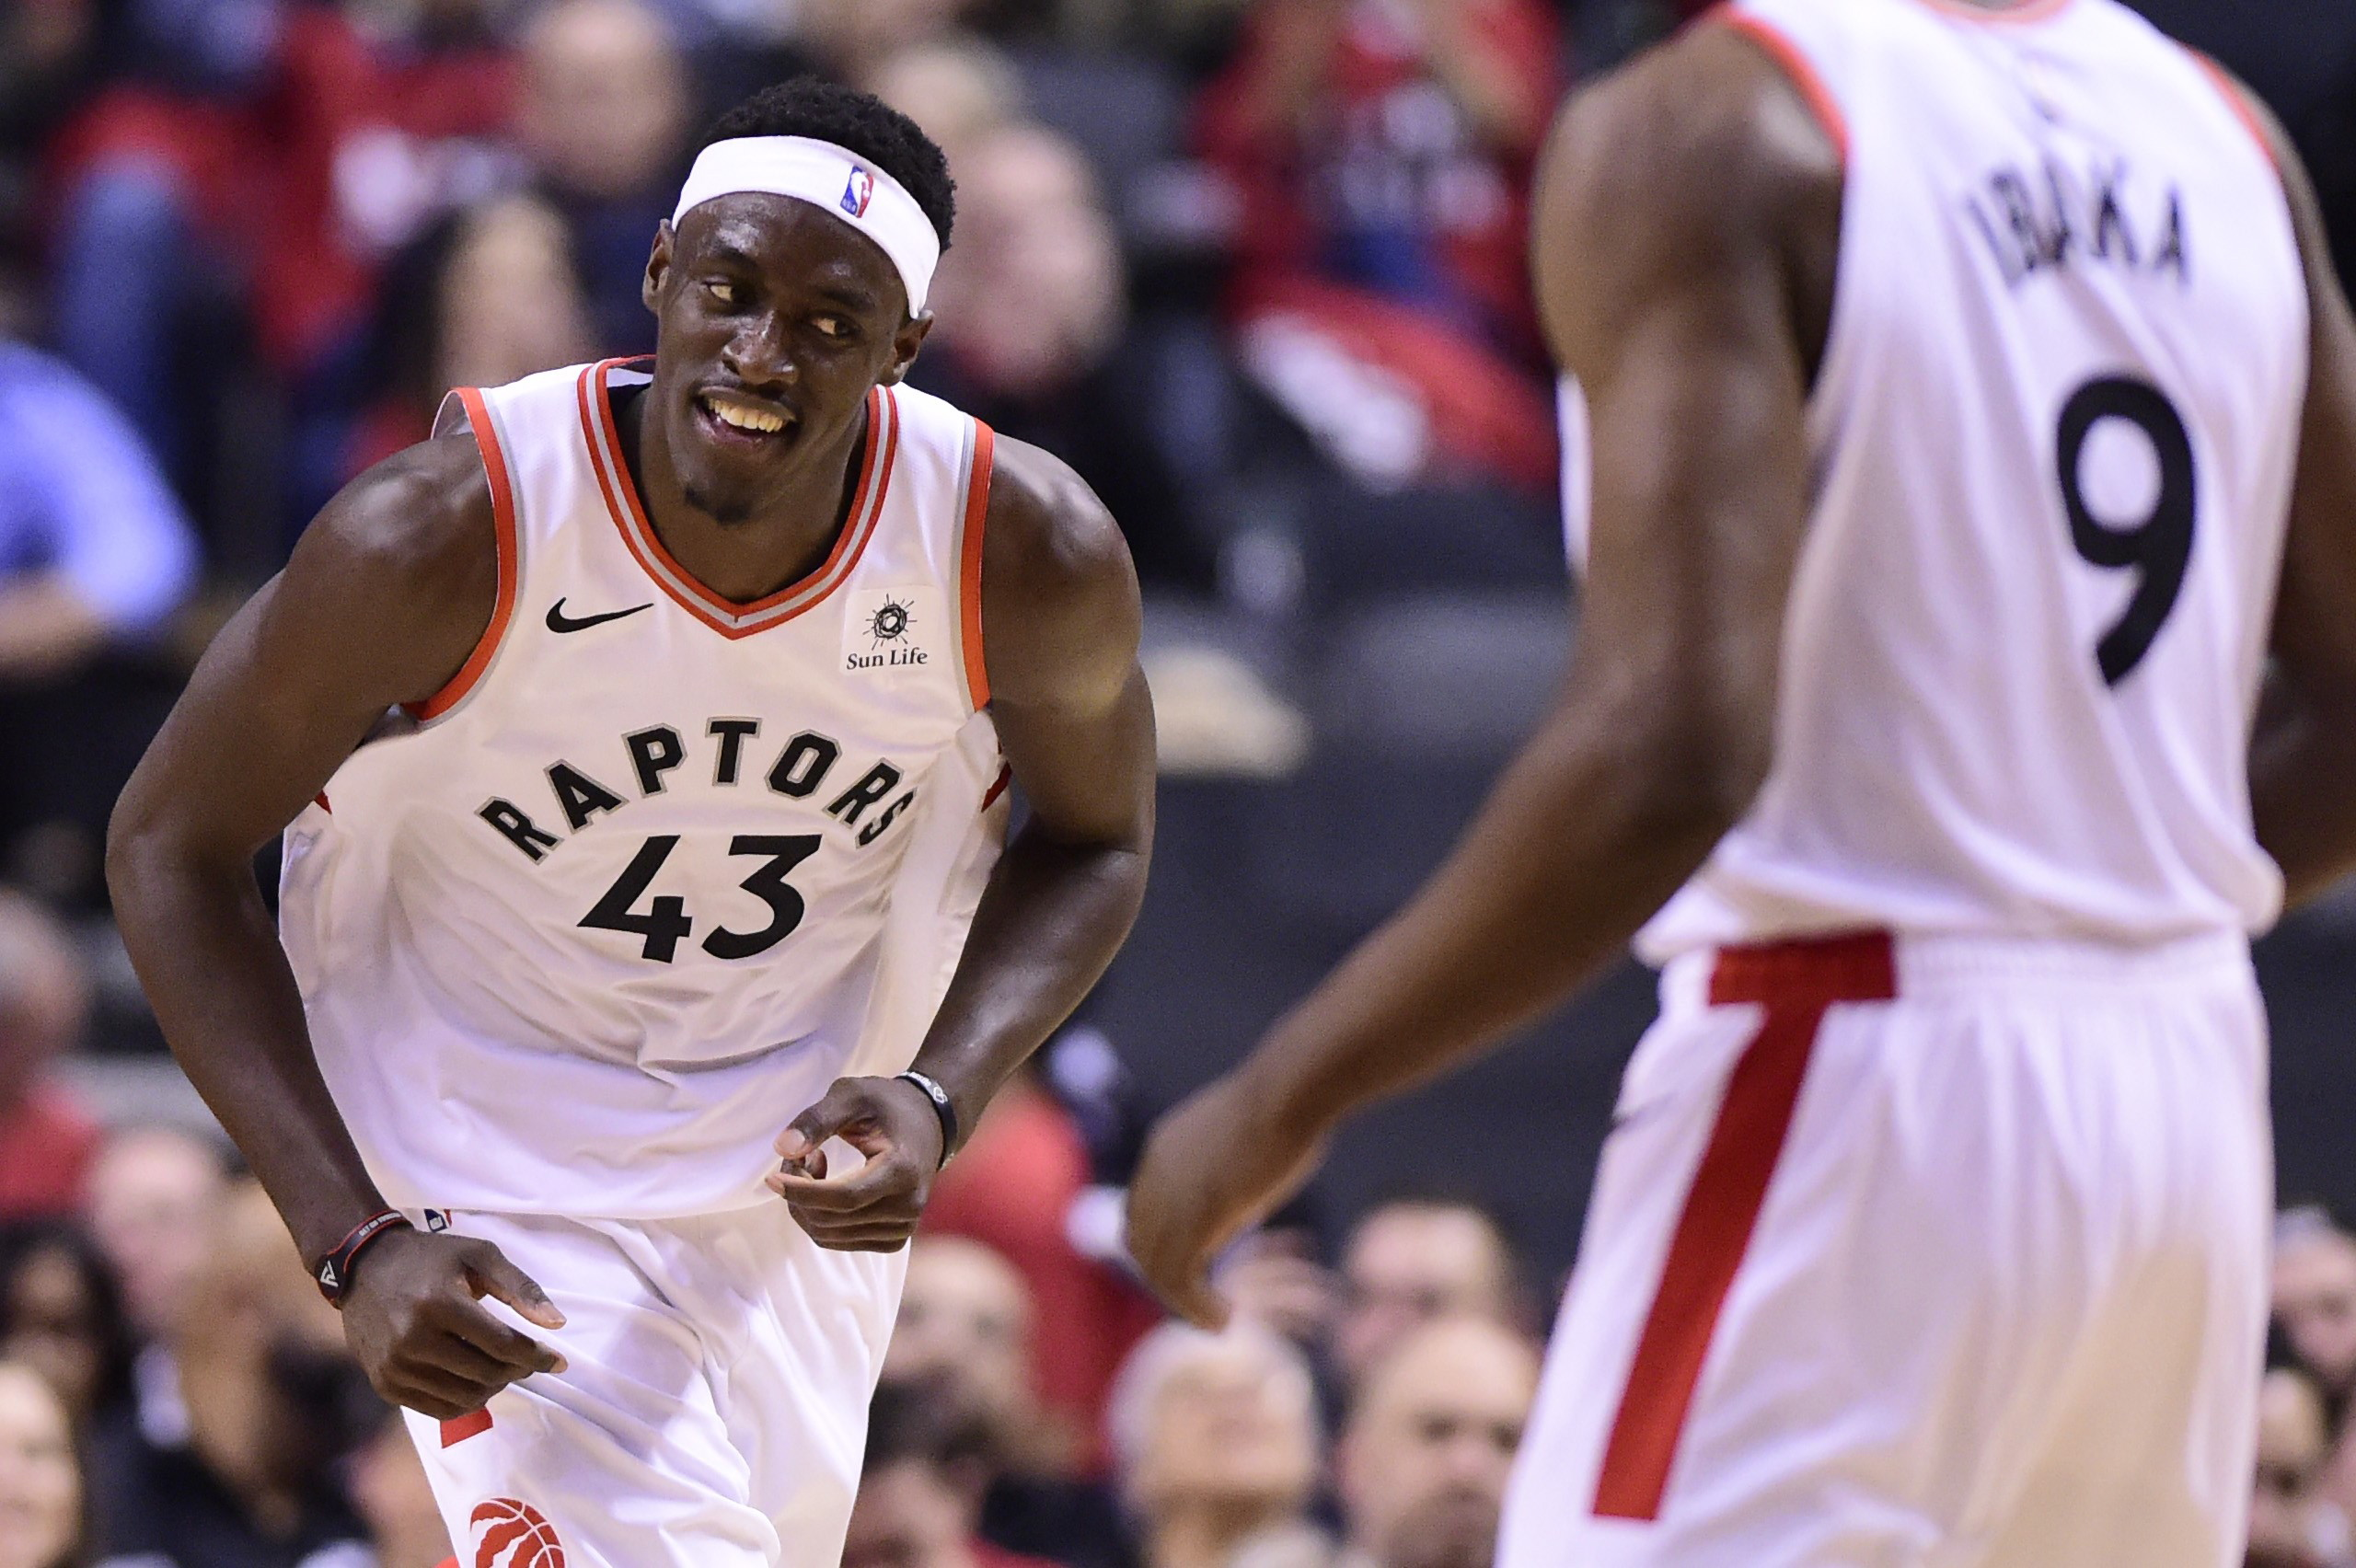 Toronto Raptors forward Pascal Siakam (43) smiles as he celebrates a dunk against the Orlando Magic during second half NBA basketball playoff action in Toronto on April 23, 2019. THE CANADIAN PRESS/Frank Gunn